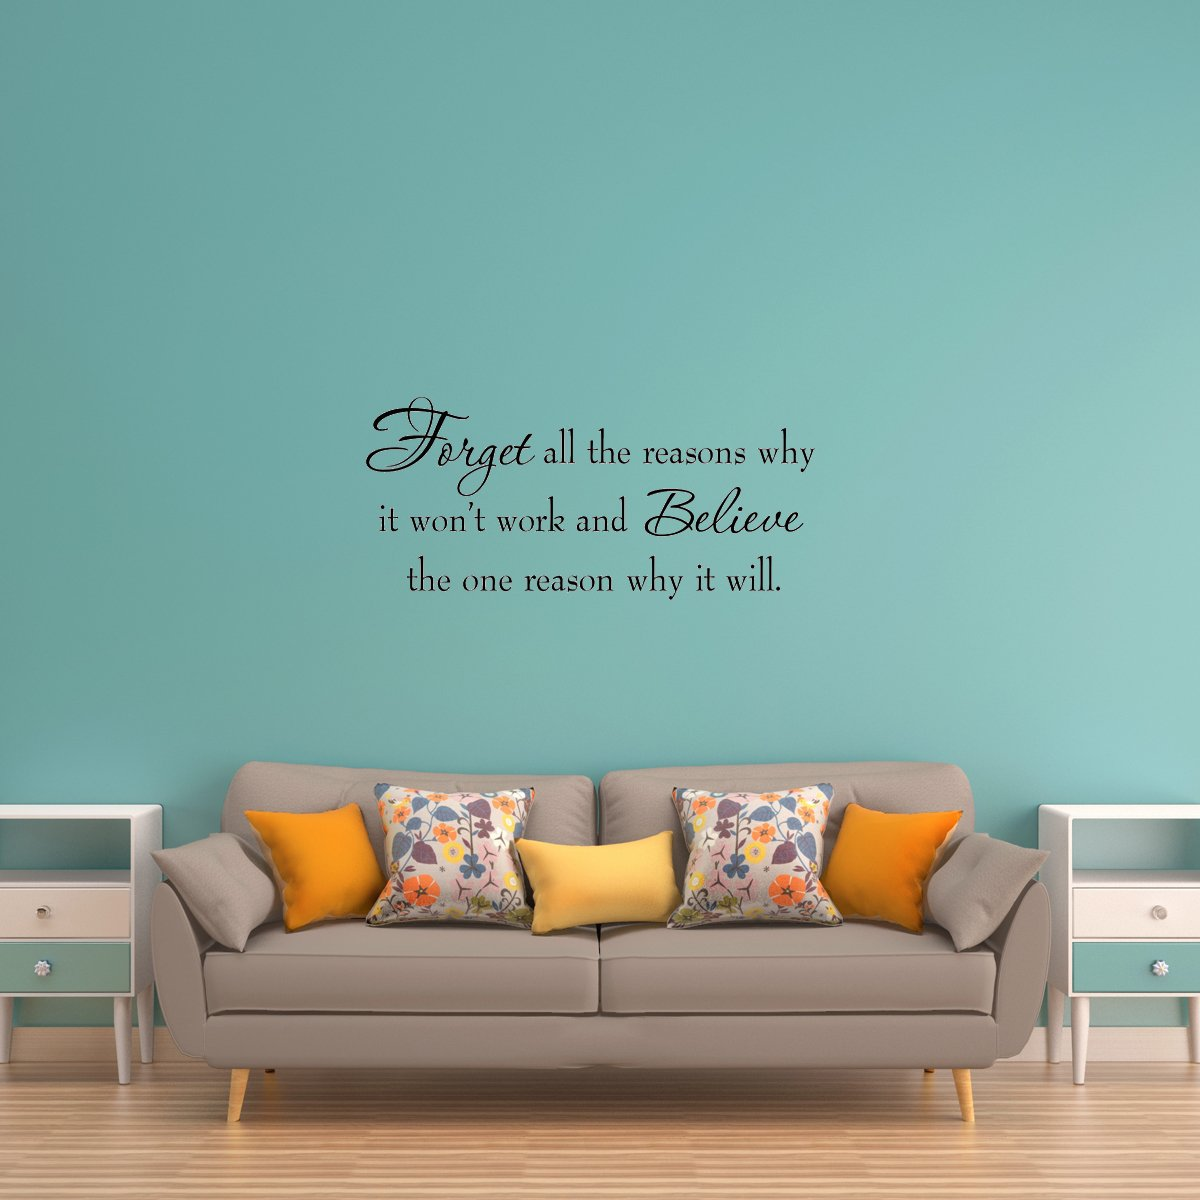 VWAQ Forget All the Reasons Why It Won't Work Wall Decal - VWAQ Vinyl Wall Art Quotes and Prints